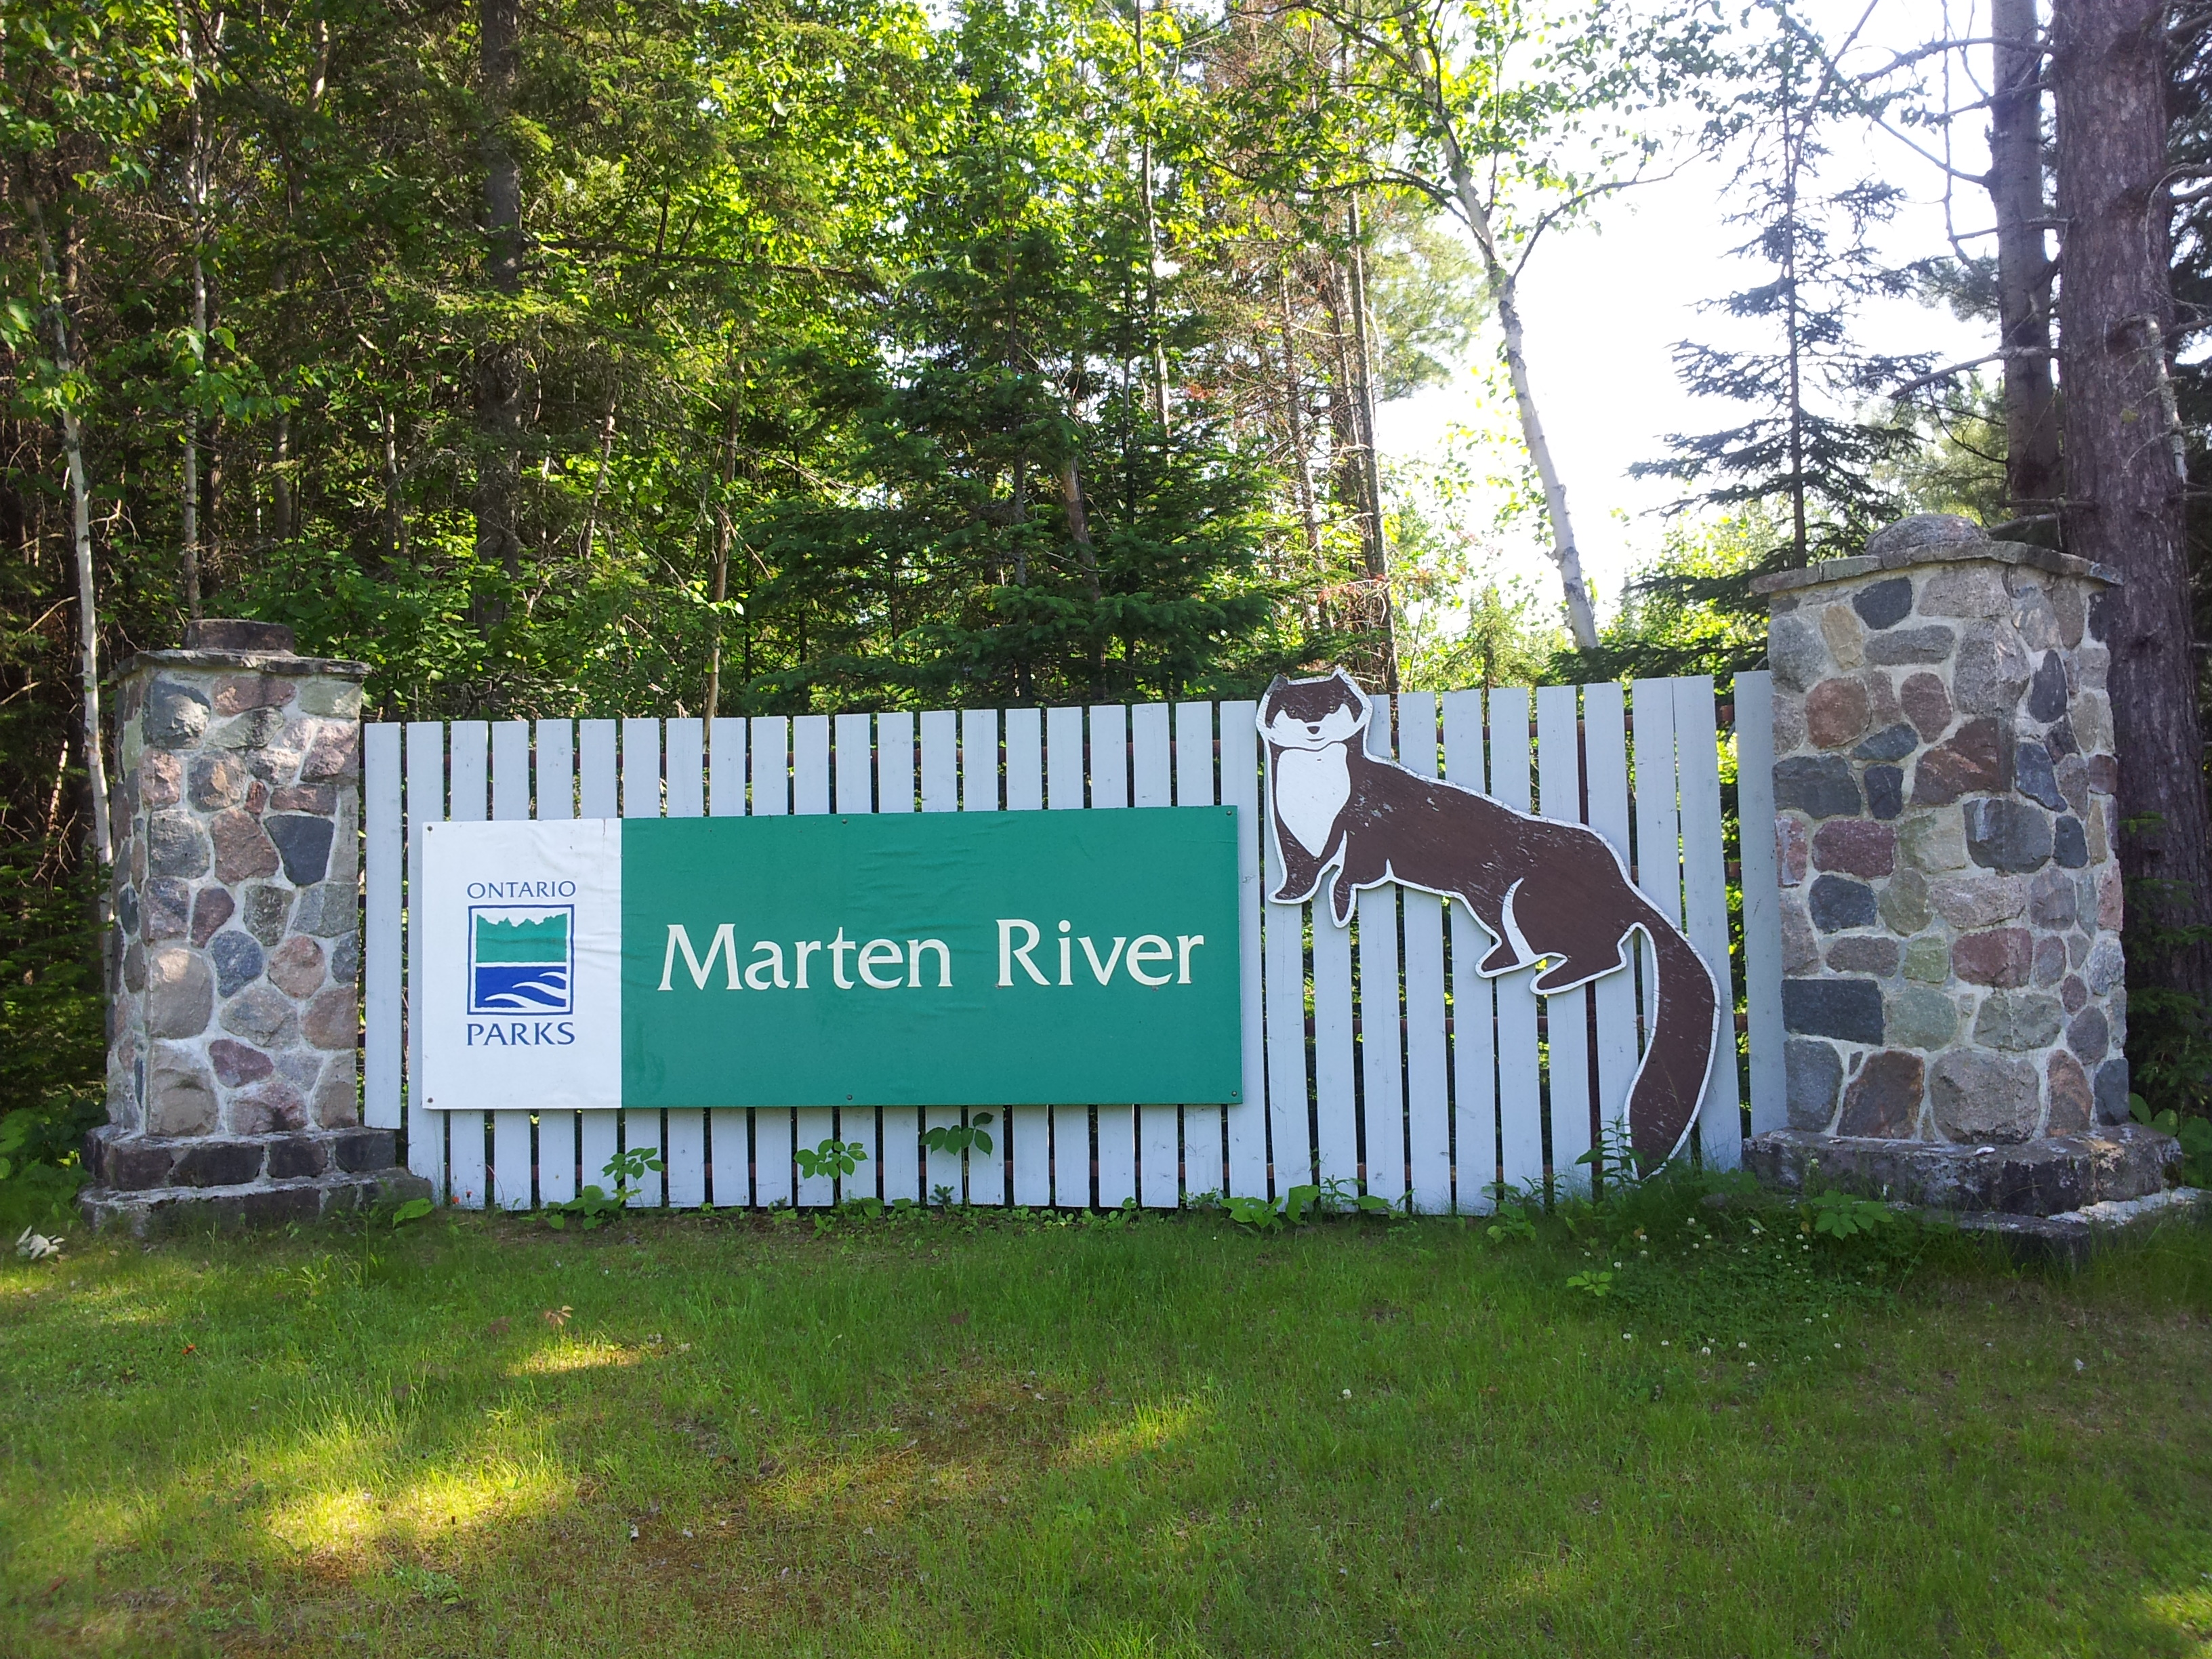 The Northeastern region has a stronghold of this ethic and has many outstanding parks. I'll introduce you to two of my favourites in the area: Marten River and Finlayson Point Provincial Parks.